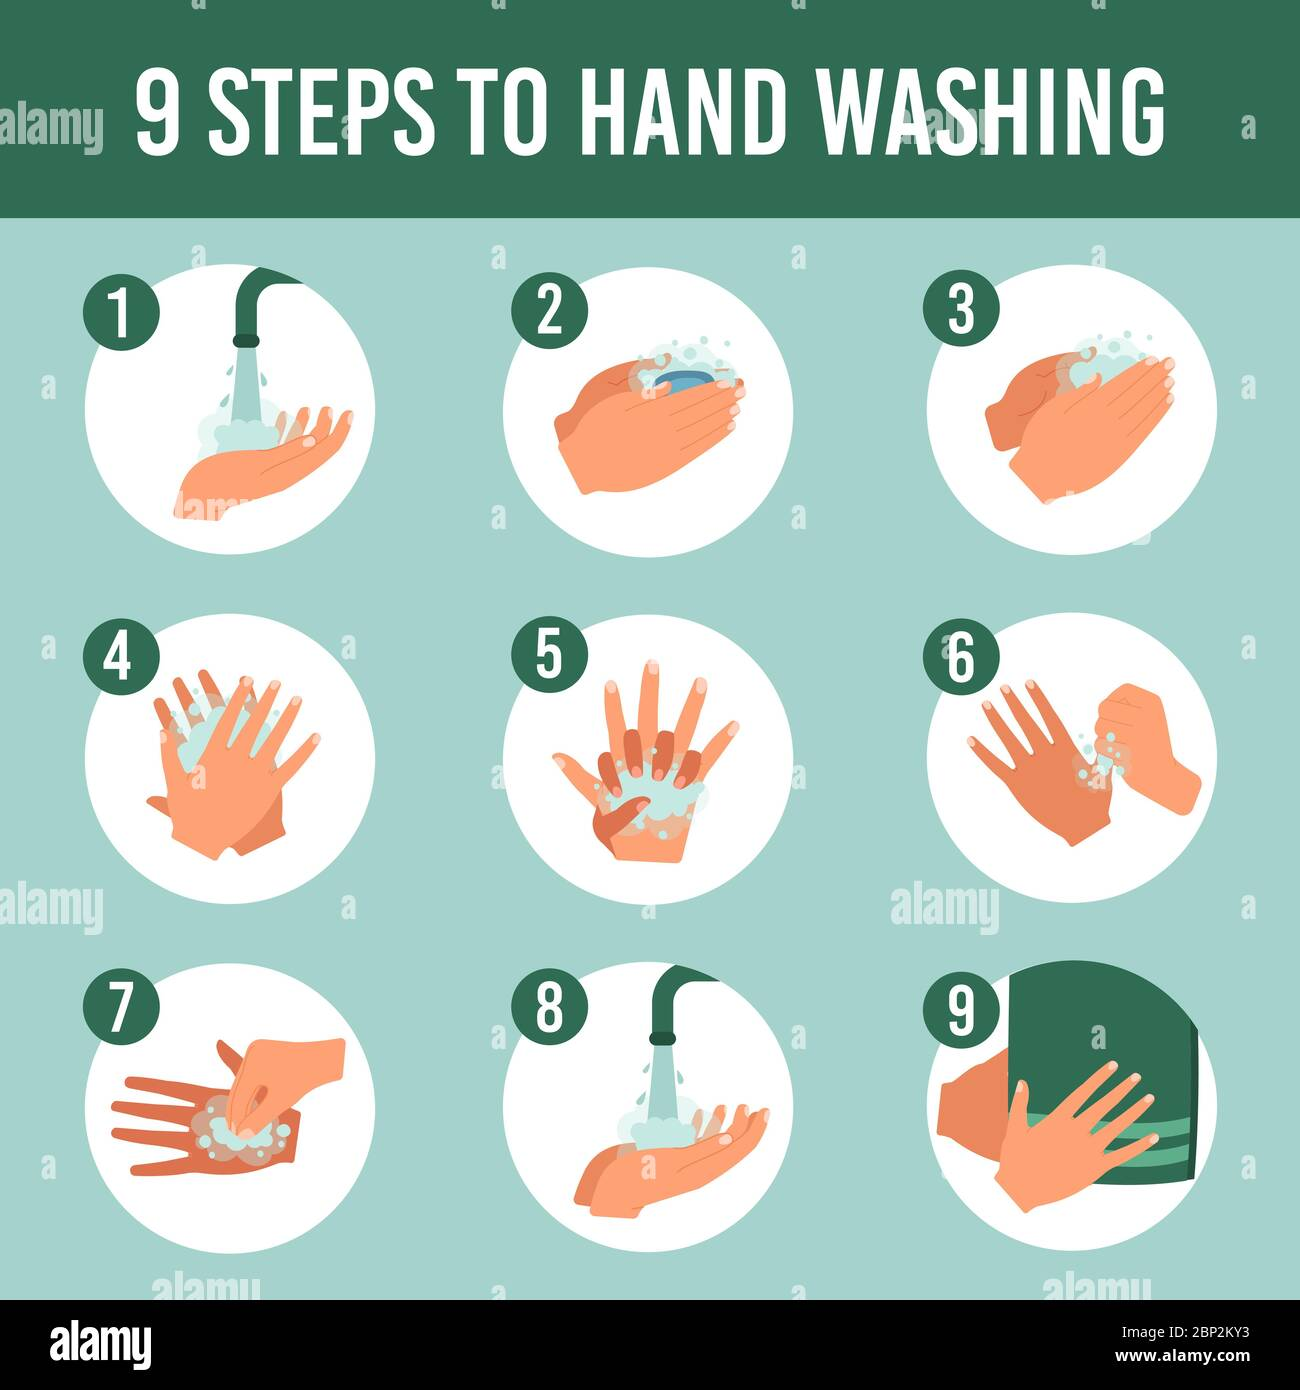 Hands wash infographic. Healthcare personal hygiene, step by step washing hands with soap vector educational infographic illustration Stock Vector